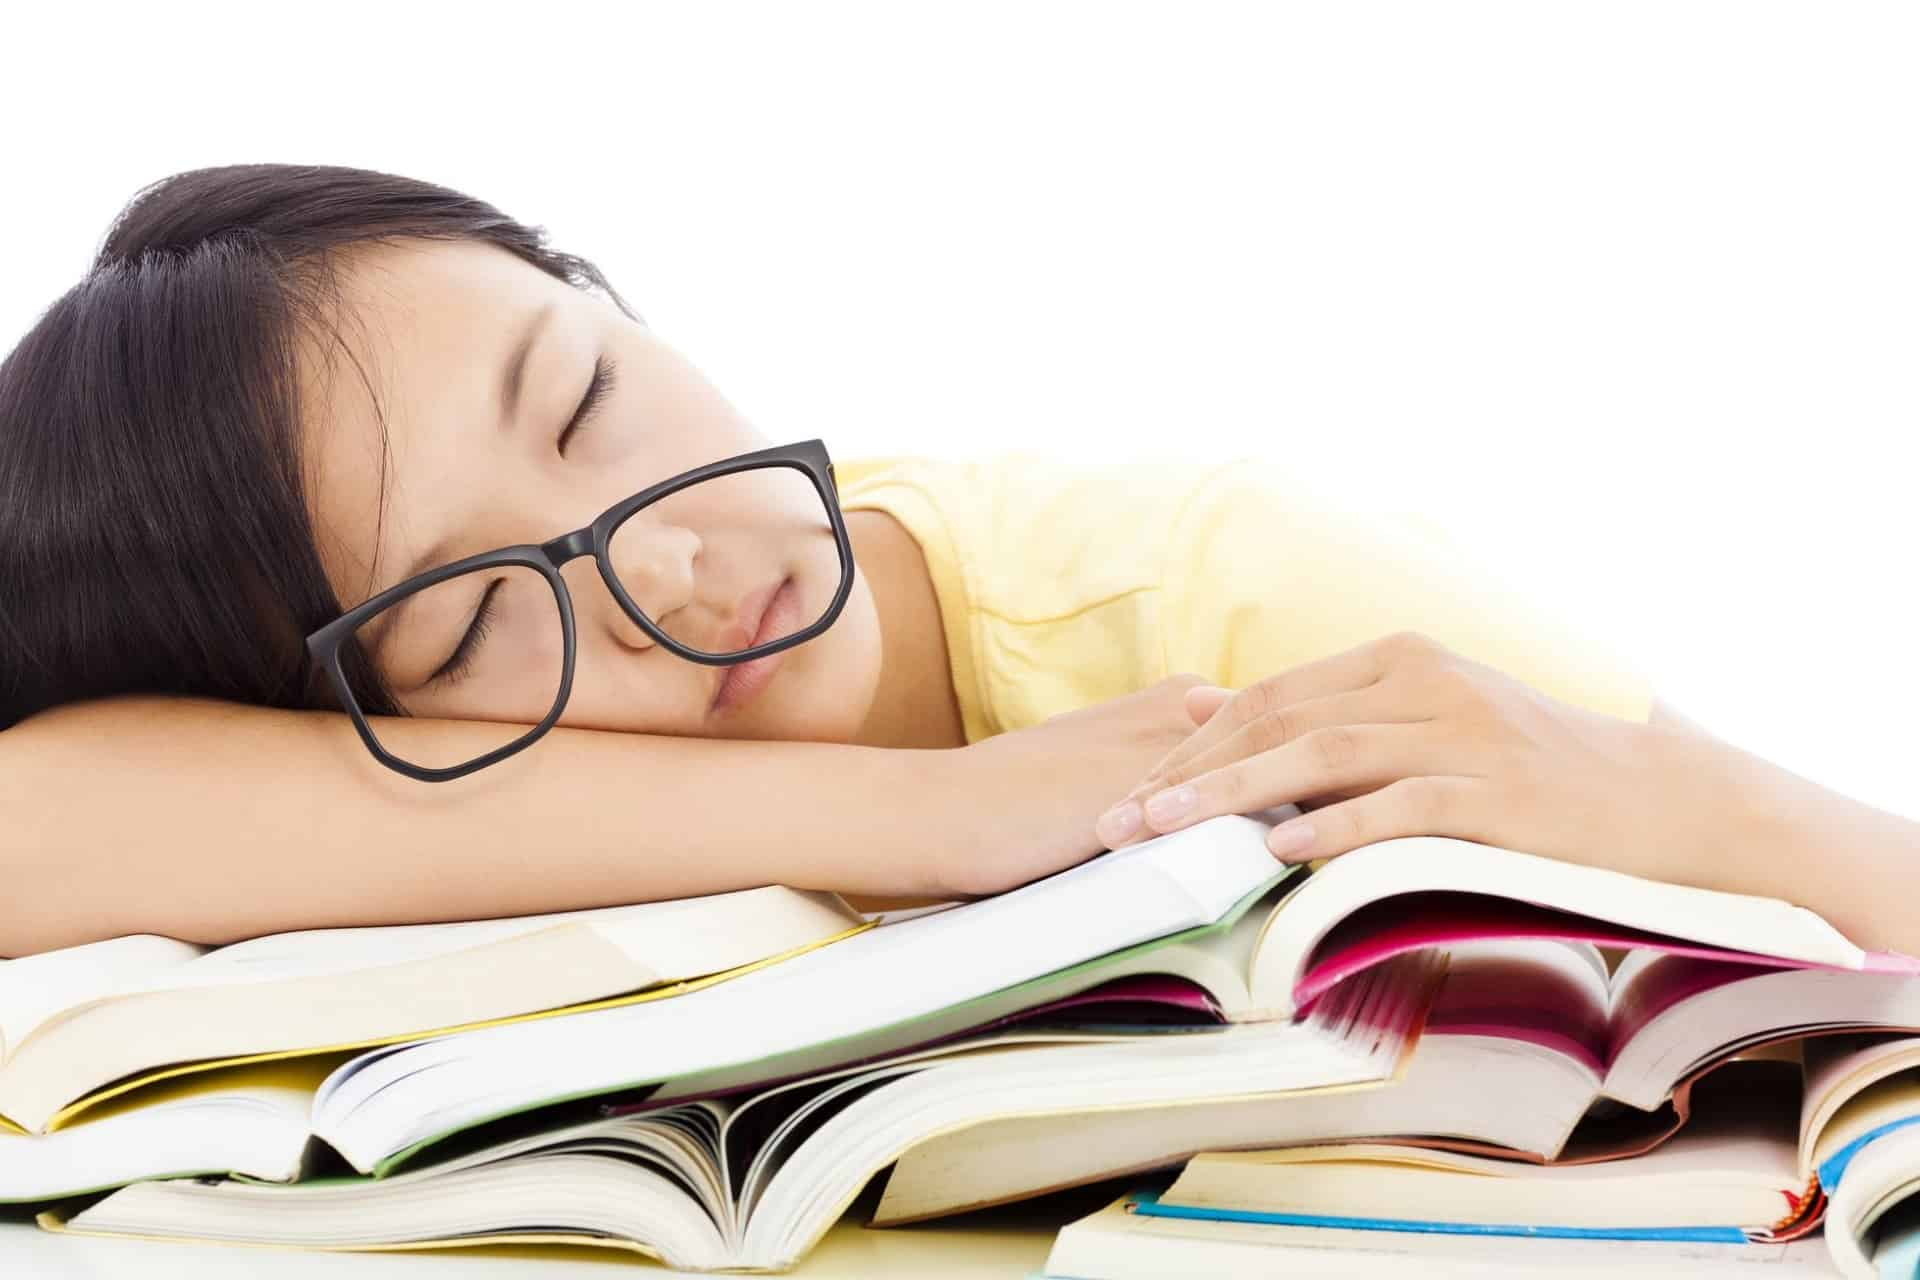 A tired student asleep on top of homework books.